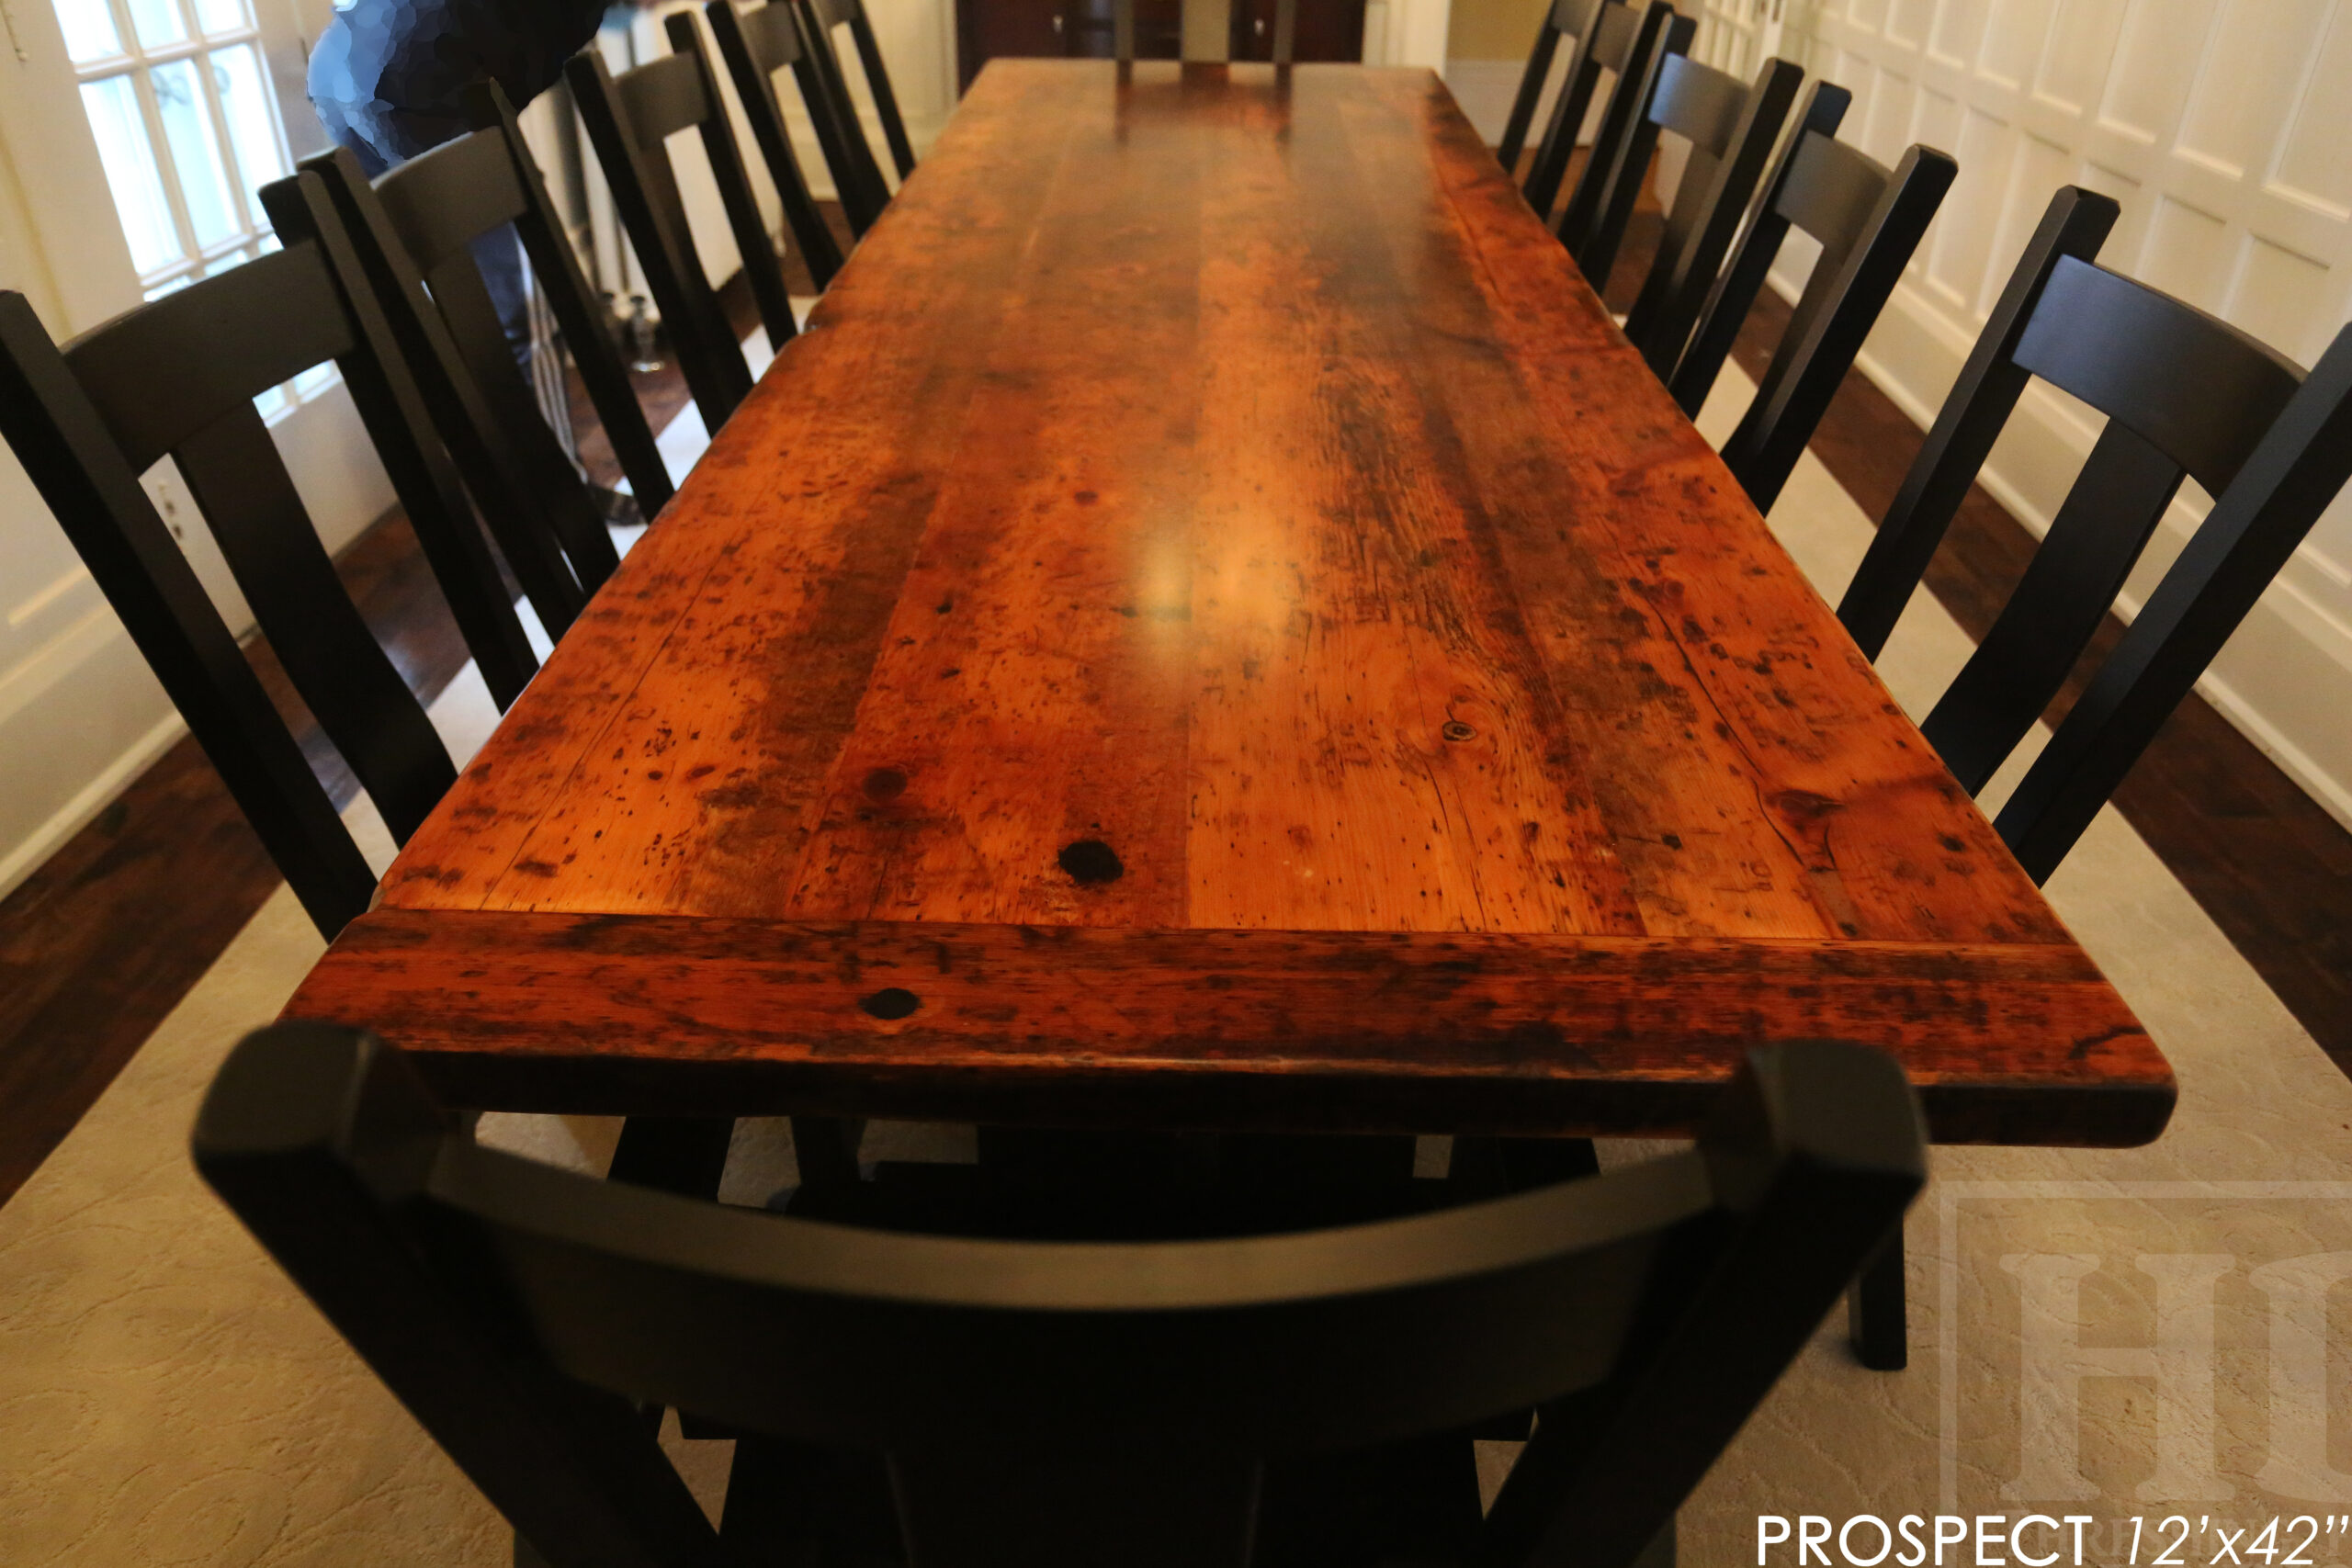 """12' Reclaimed Wood Table for a Port Dover home - 42"""" wide - Trestle Base - 2"""" Old Growth Pine Threshing Floor Construction - Original edges & distressing maintained - Premium epoxy + satin polyurethane finish - Black Painted Base - 12 Plank Back Chairs / Wormy Maple - Painted Solid Black / Satin polyurethane clearcoat finish - www.table.ca"""